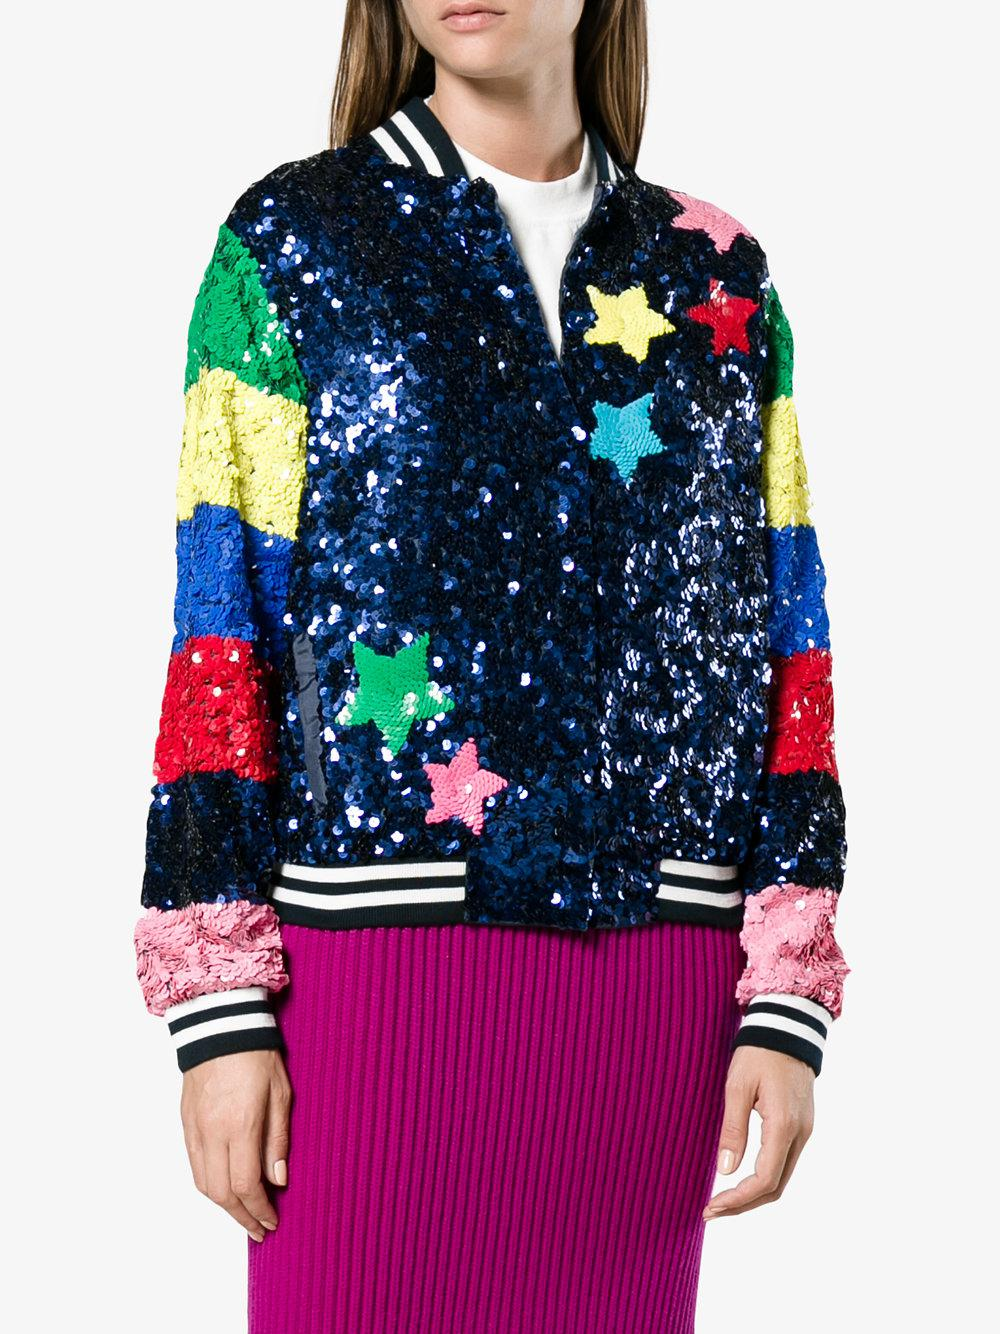 856f19c575360 Lyst - Mira mikati Sequin Bomber With Rainbow Sleeves in Blue